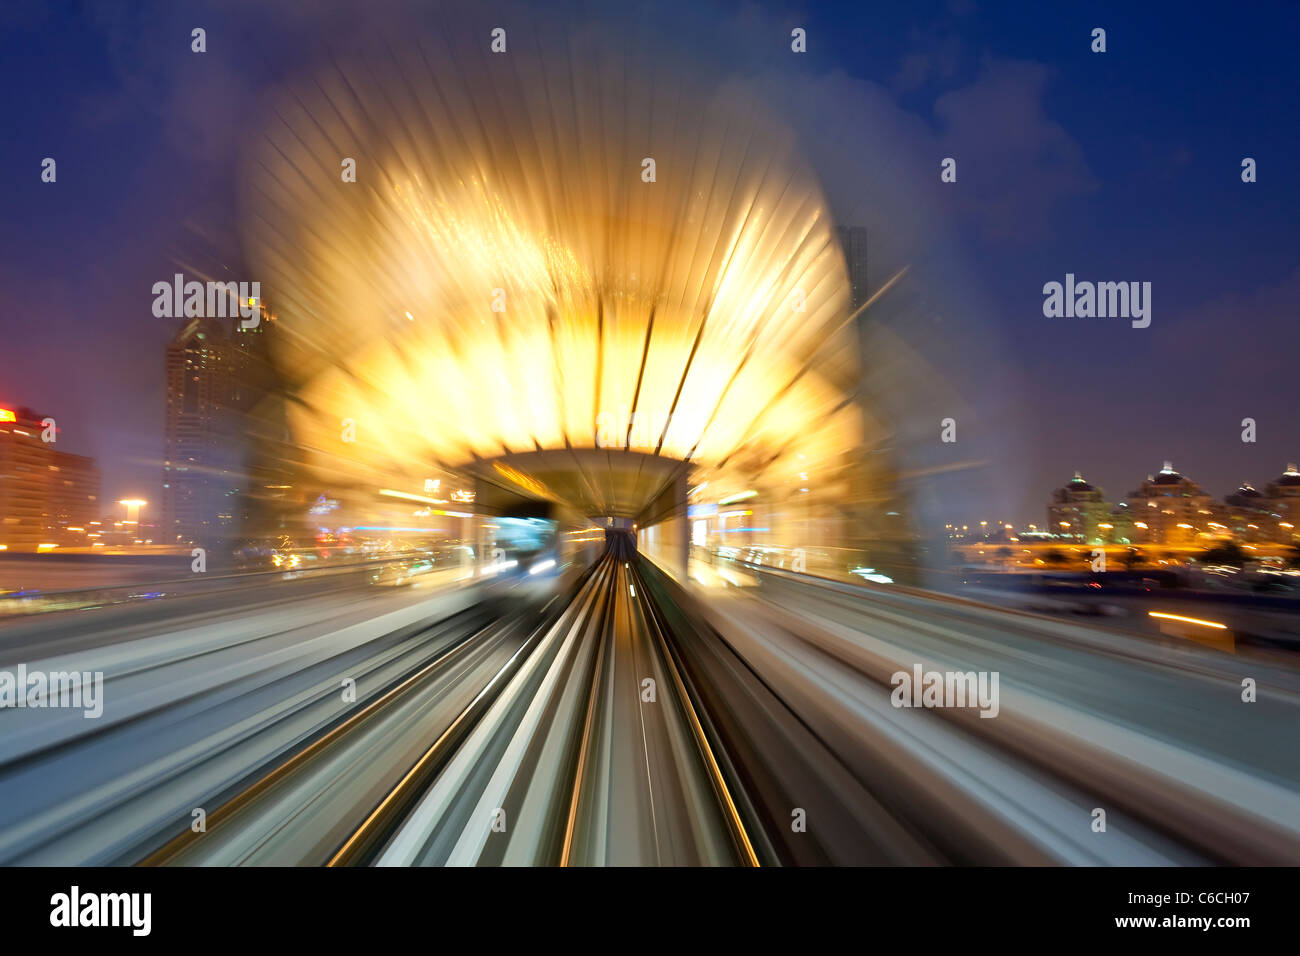 Opened in 2010, the Dubai Metro, MRT, in motion approaching a station, Dubai, United Arab Emirates - Stock Image